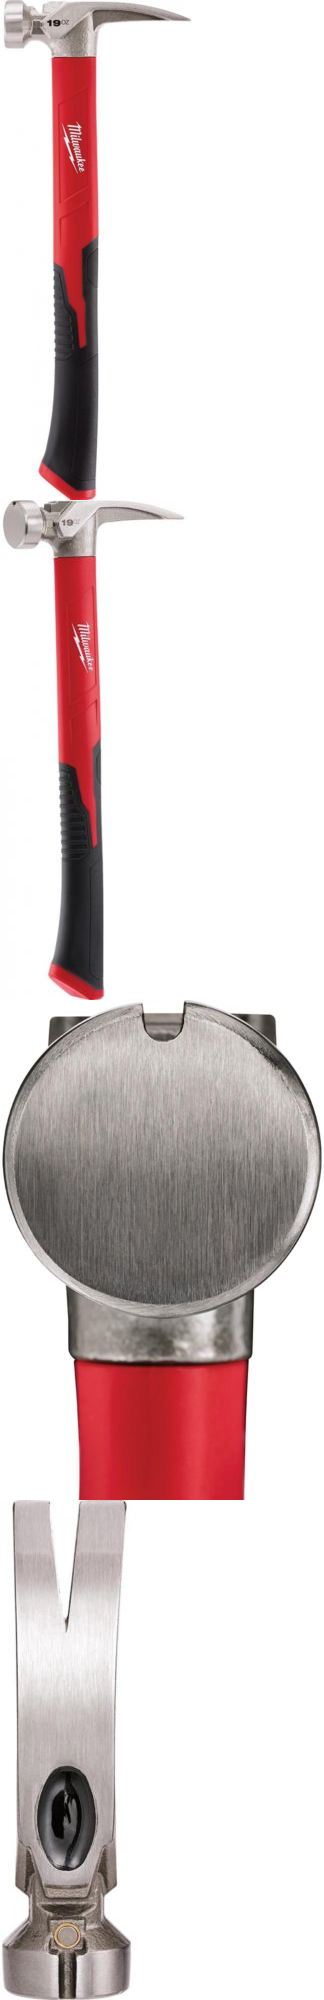 Hammers and Mallets 20763: Milwaukee Smooth Face Framing Hammer Poly ...